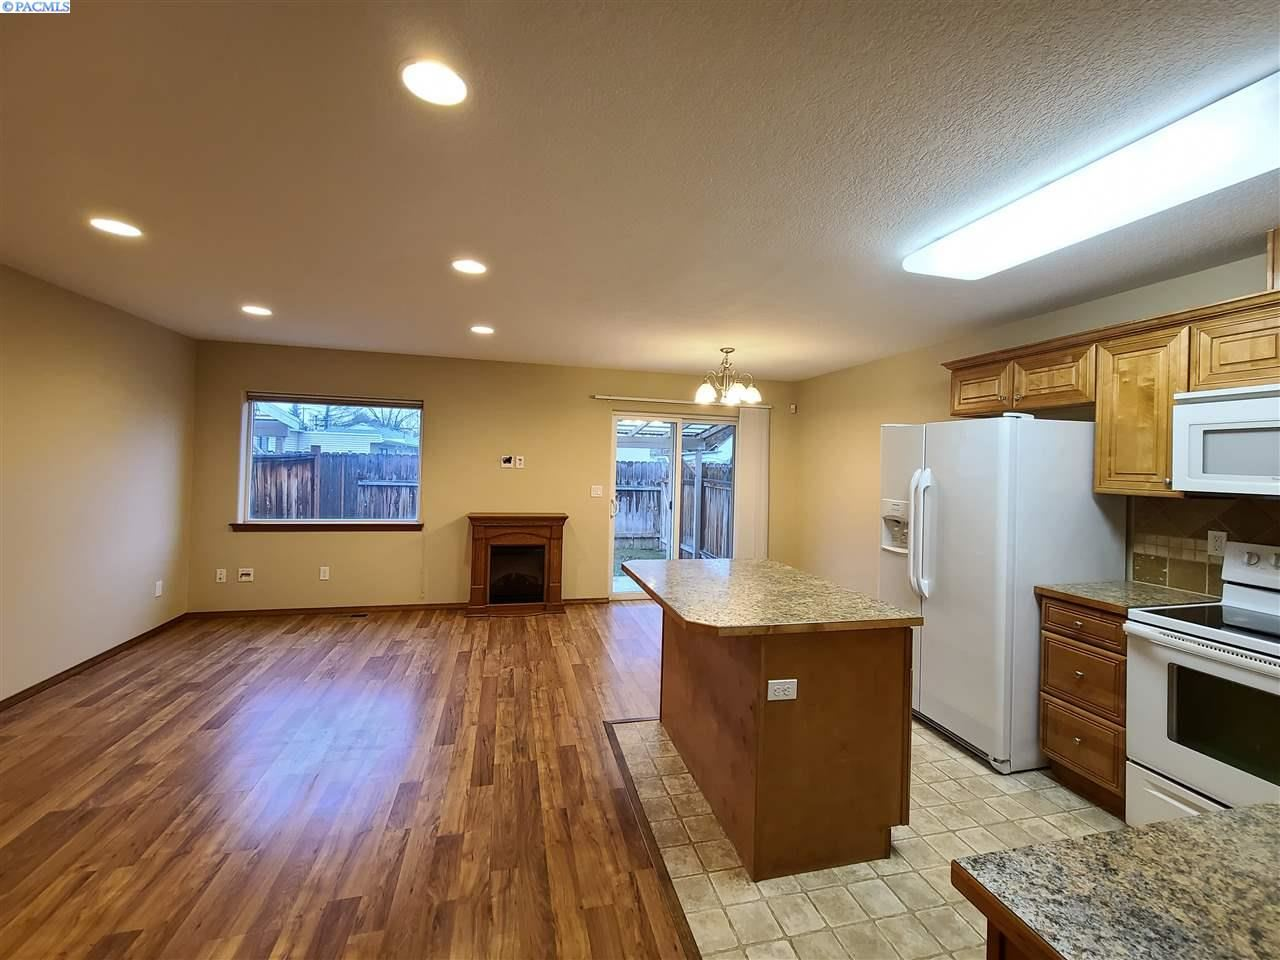 Photo of 100 S Dawes St, Unit D, Kennewick, WA 99336 (MLS # 251090)